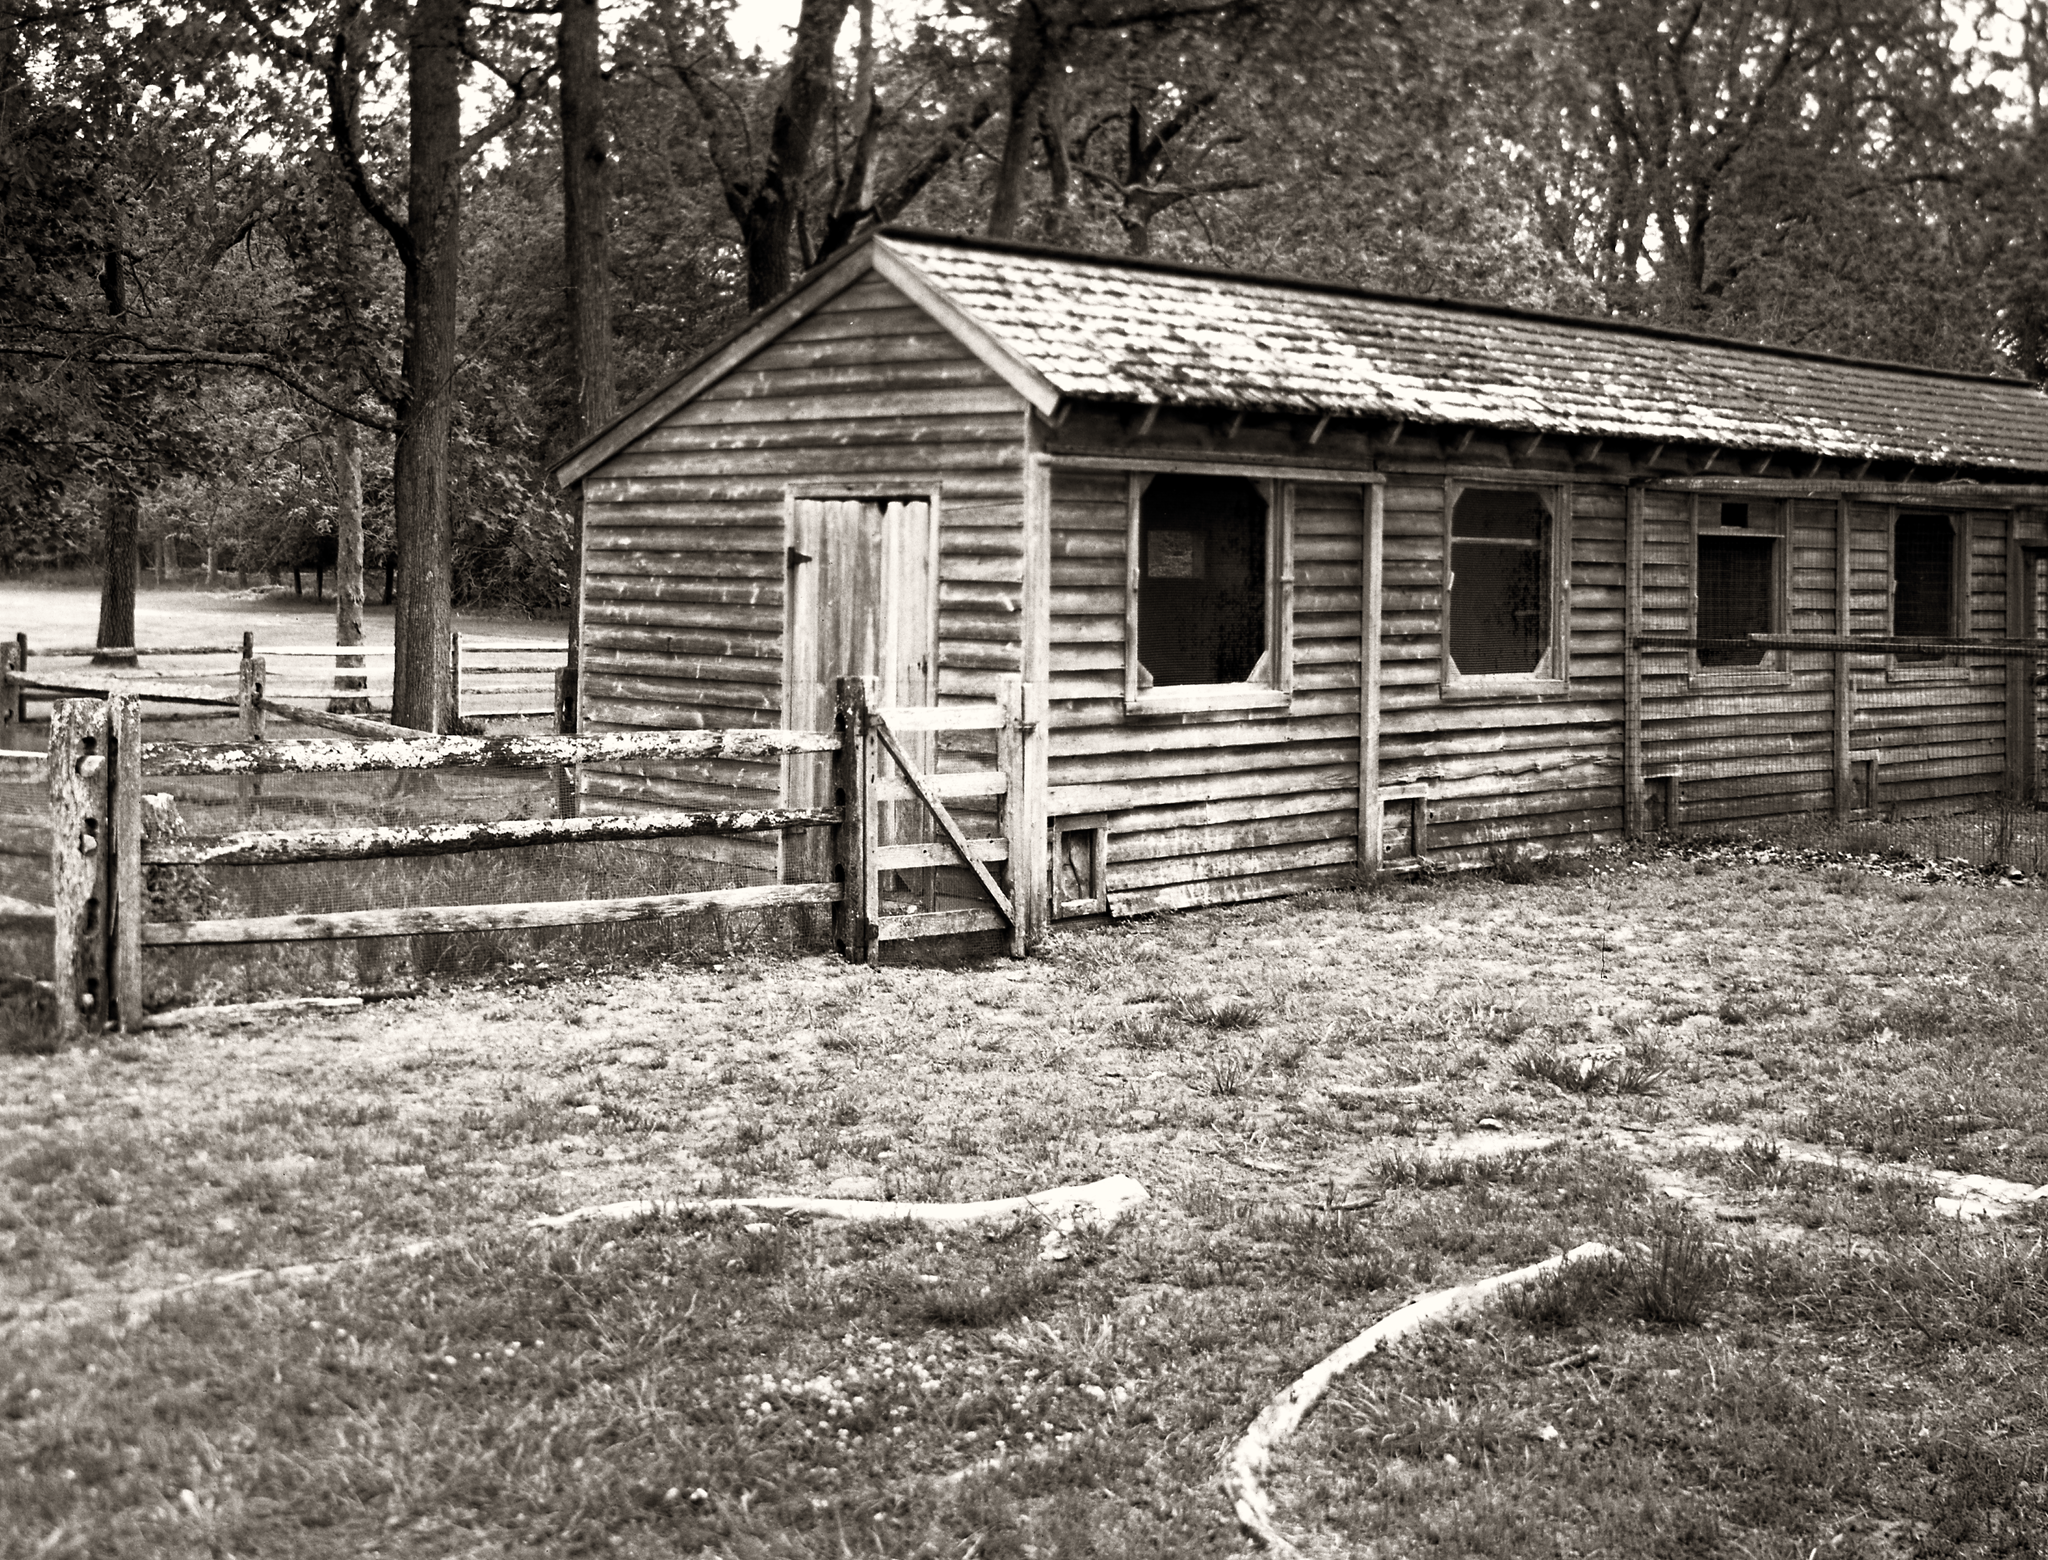 4x5_for_365_project_0147_Batsto_Village_Chicken_Coop.png